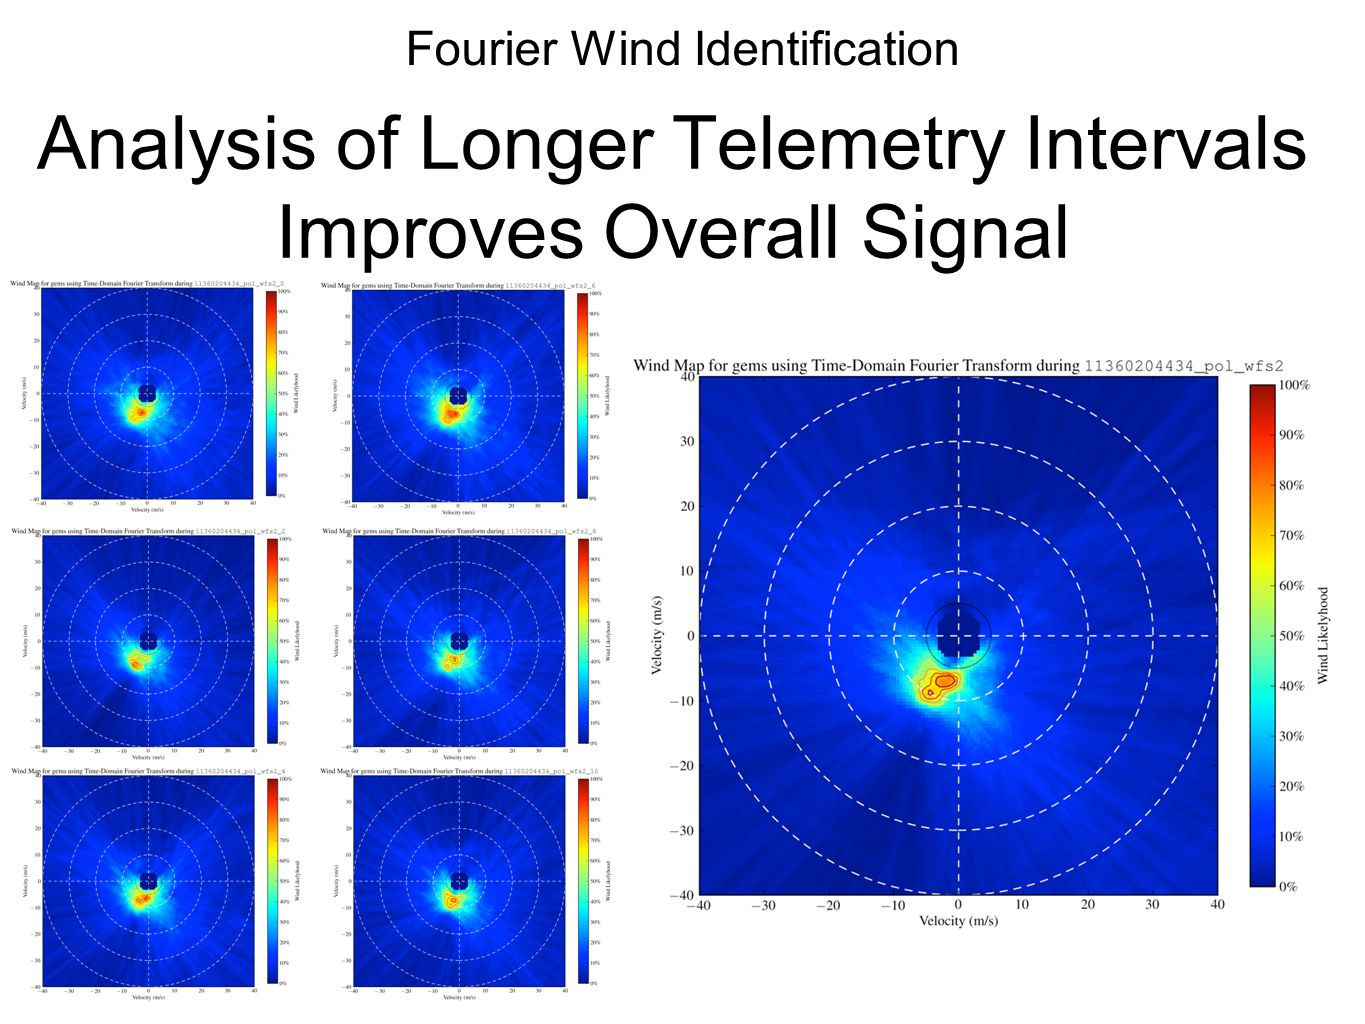 Analysis of Longer Telemetry Intervals Improves Overall Signal Fourier Wind Identification